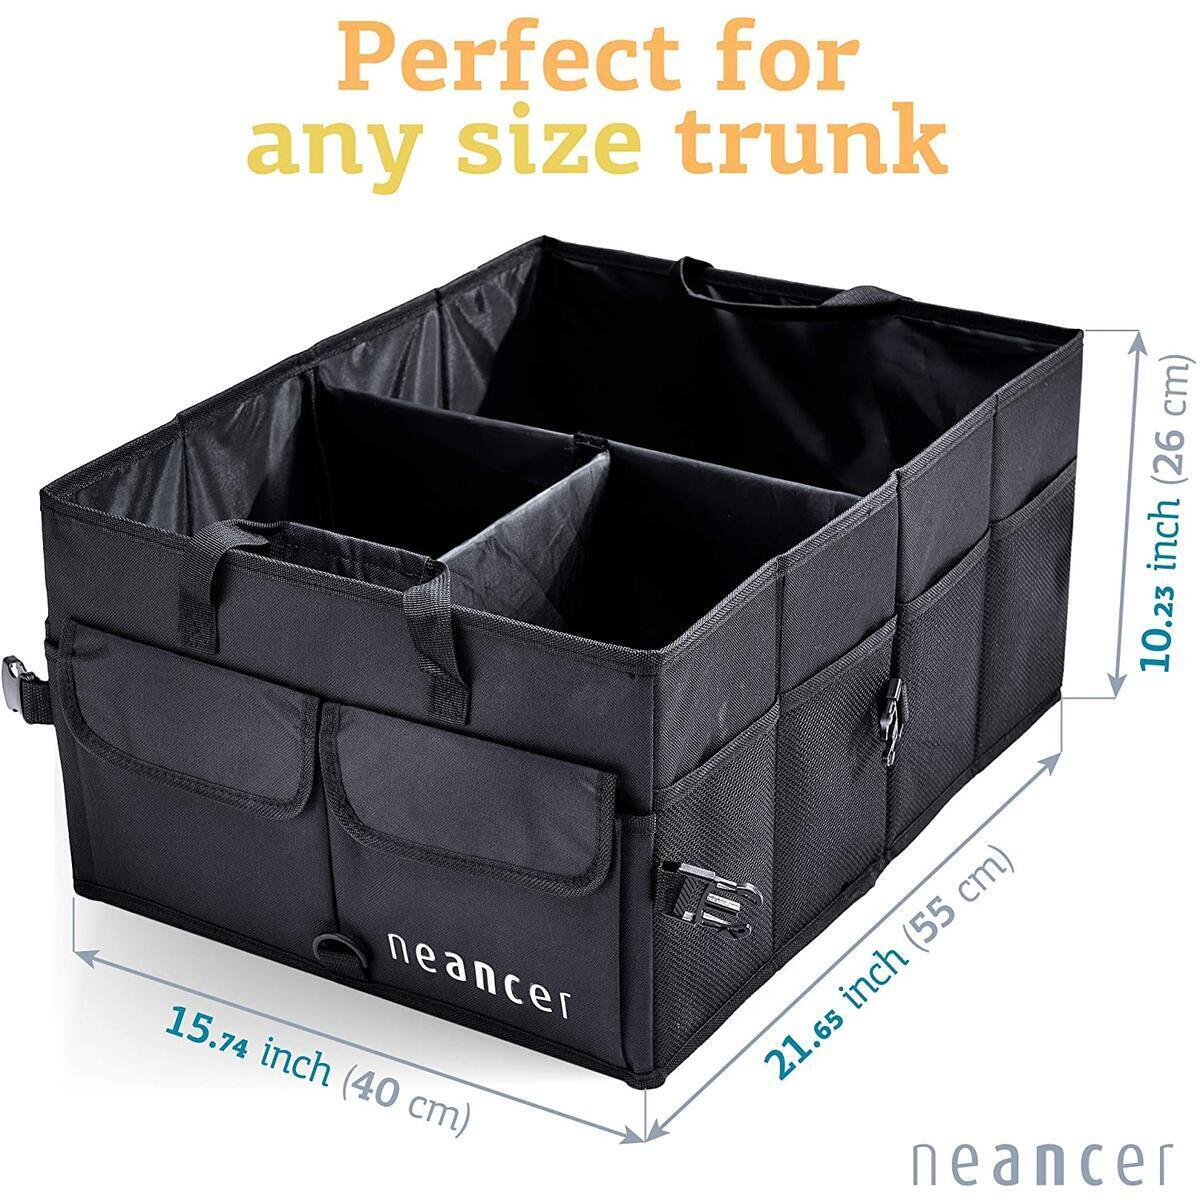 Neancer Trunk Organizer for Car, Storage SUV Cargo Organizer for Car, Carrying Handles, Adjustable Anchoring Straps, Divider Compartments for Organization